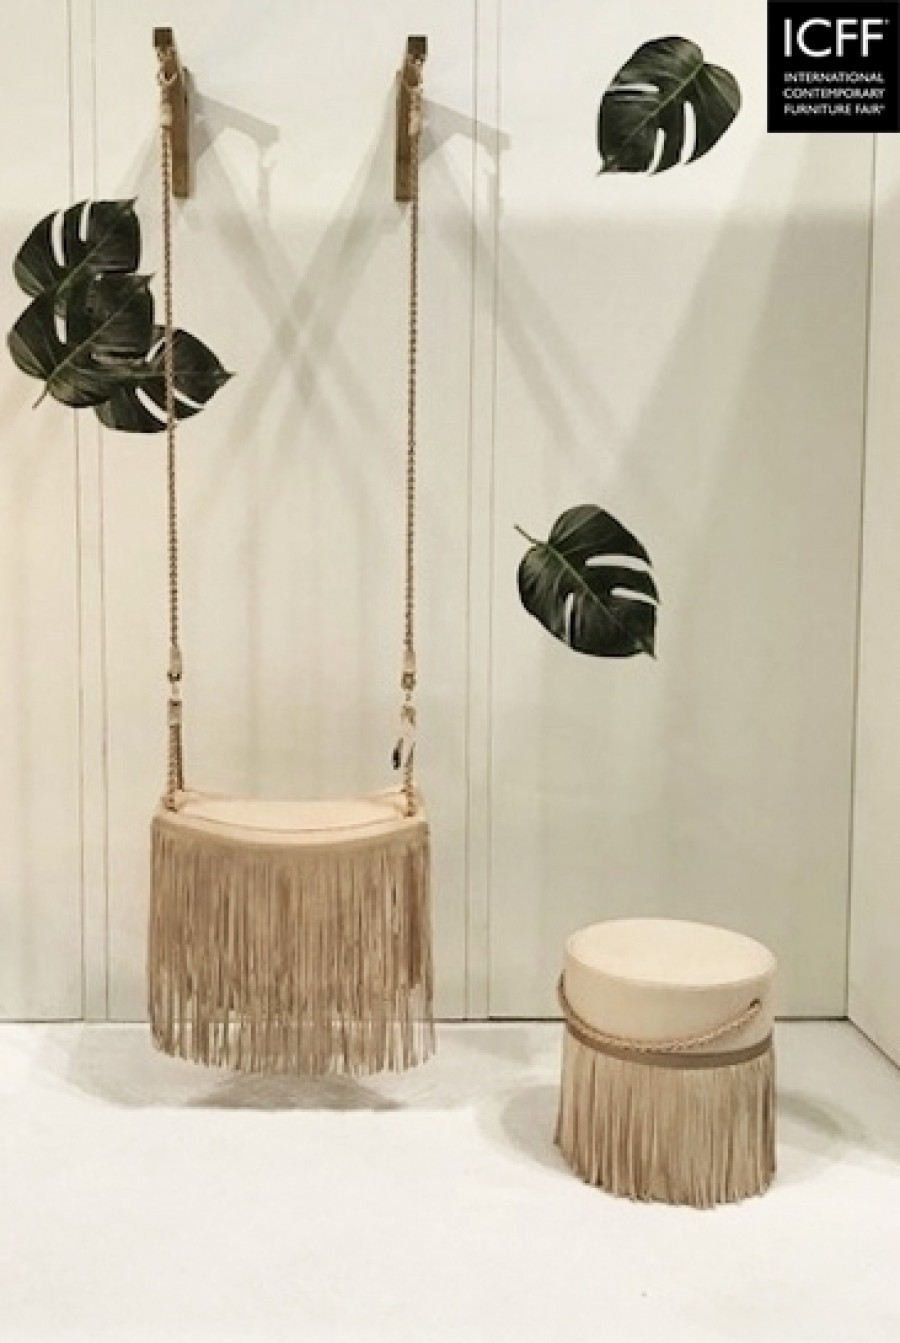 ICFF Swinging with Style